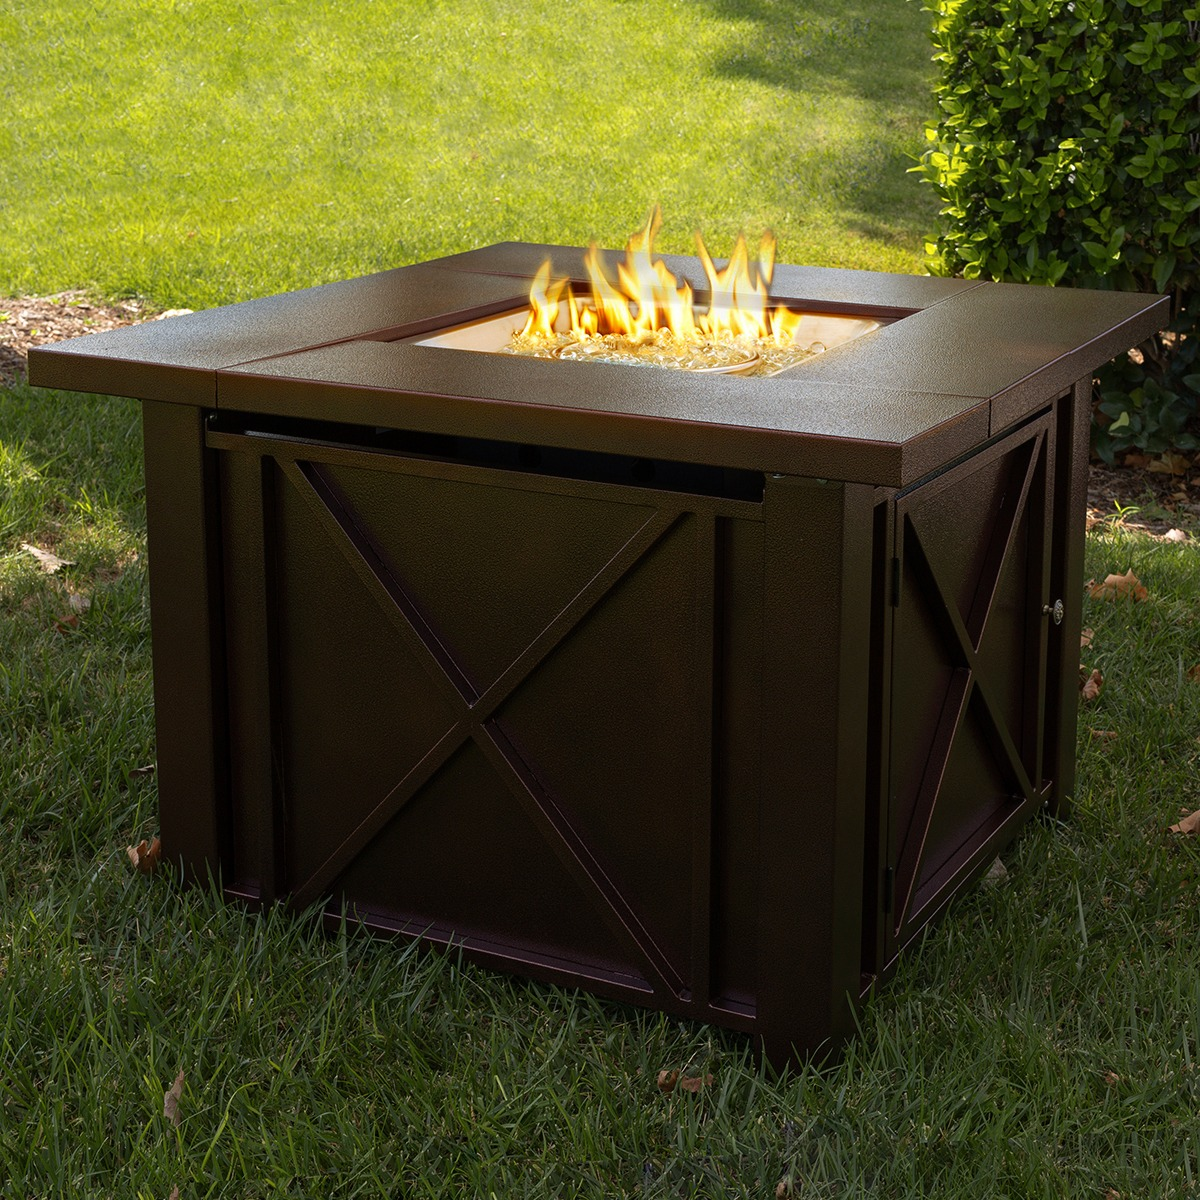 LPG Fire Pit Table Outdoor Gas Fireplace Propane Heater Patio Backyard Deck  New